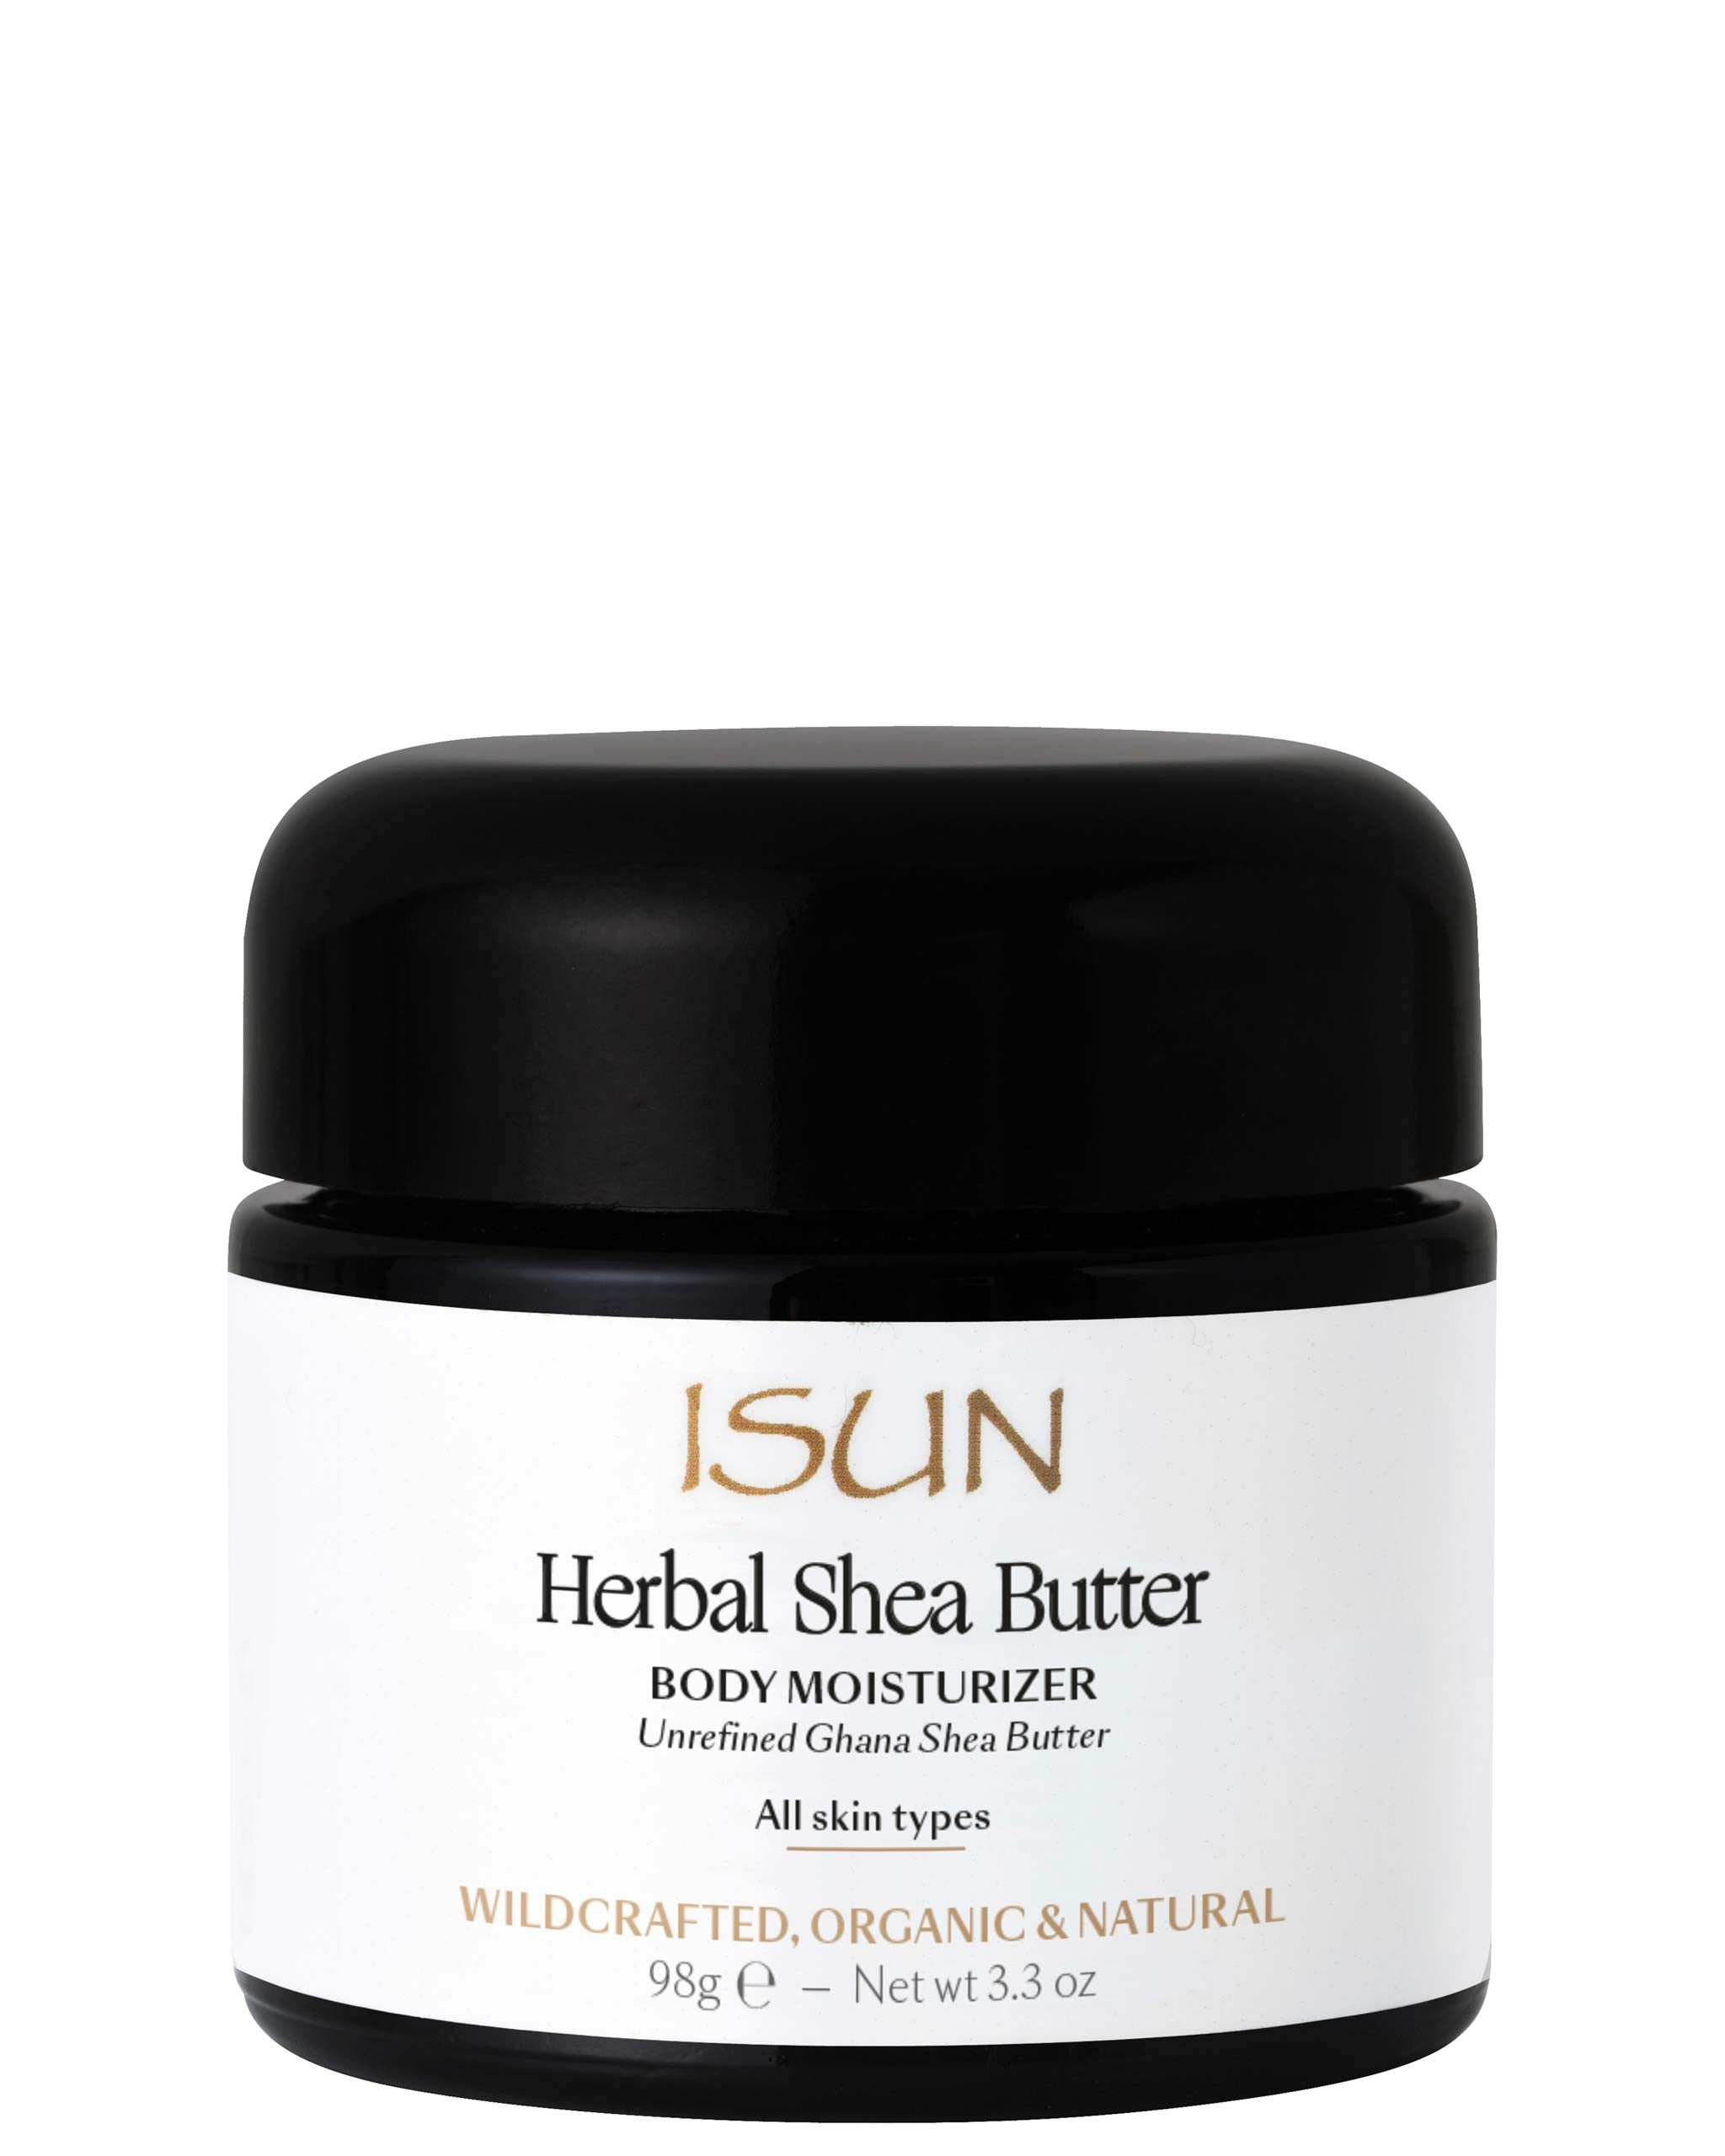 ISUN Herbal Shea Butter / Body Moisturizer 100ML, ISUN - ShopConsciousBeauty.com